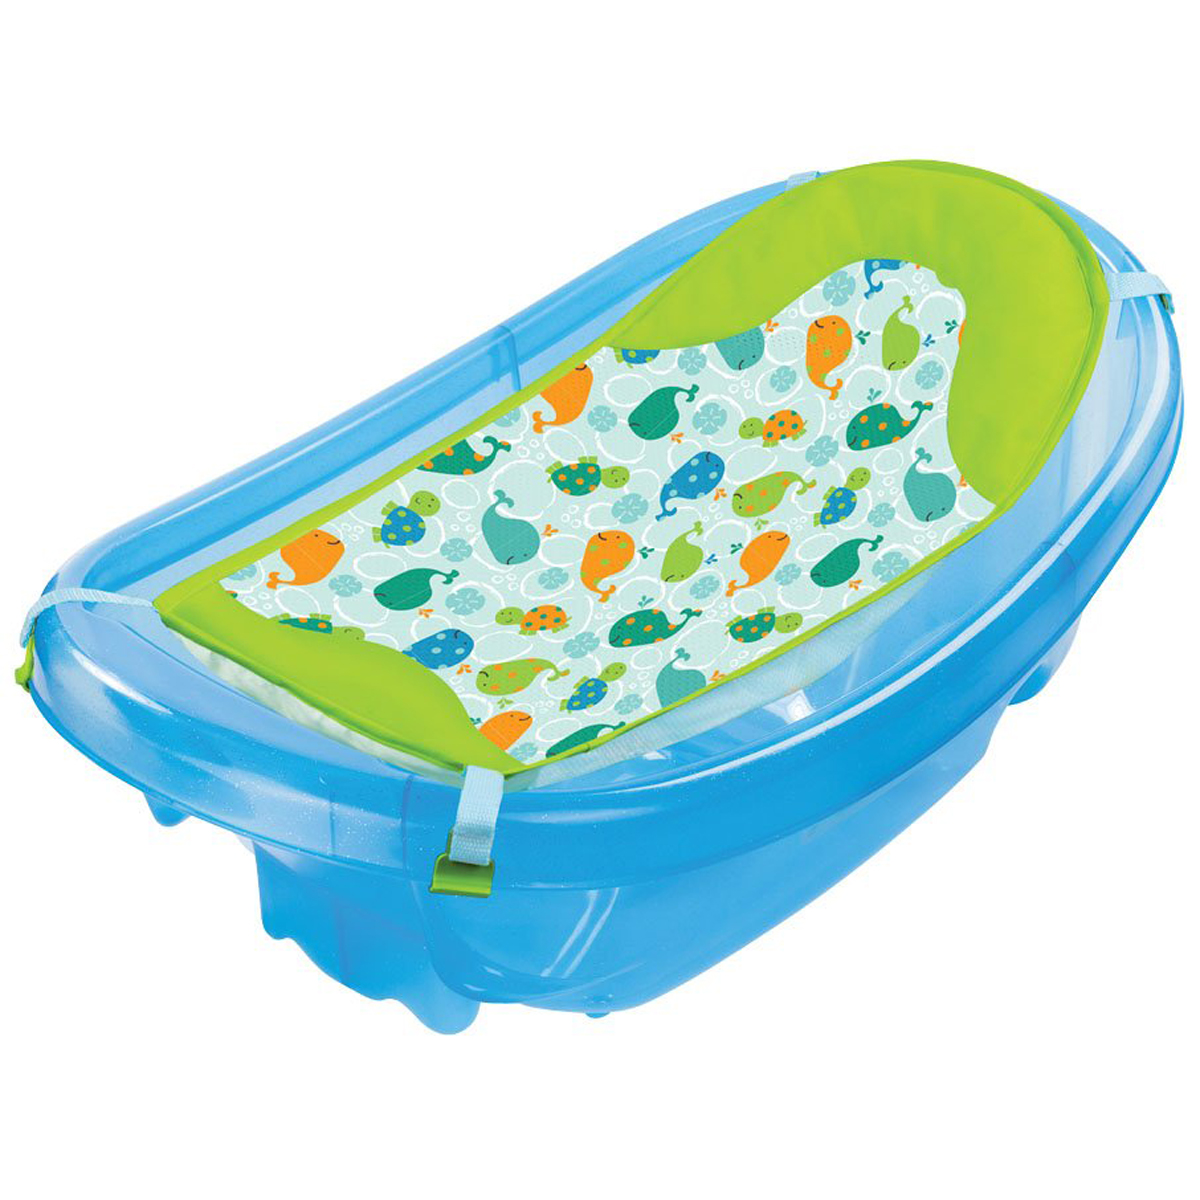 Chau tam co luoi xanh Summer 09150 - Sparkle N Splash Tub Blue